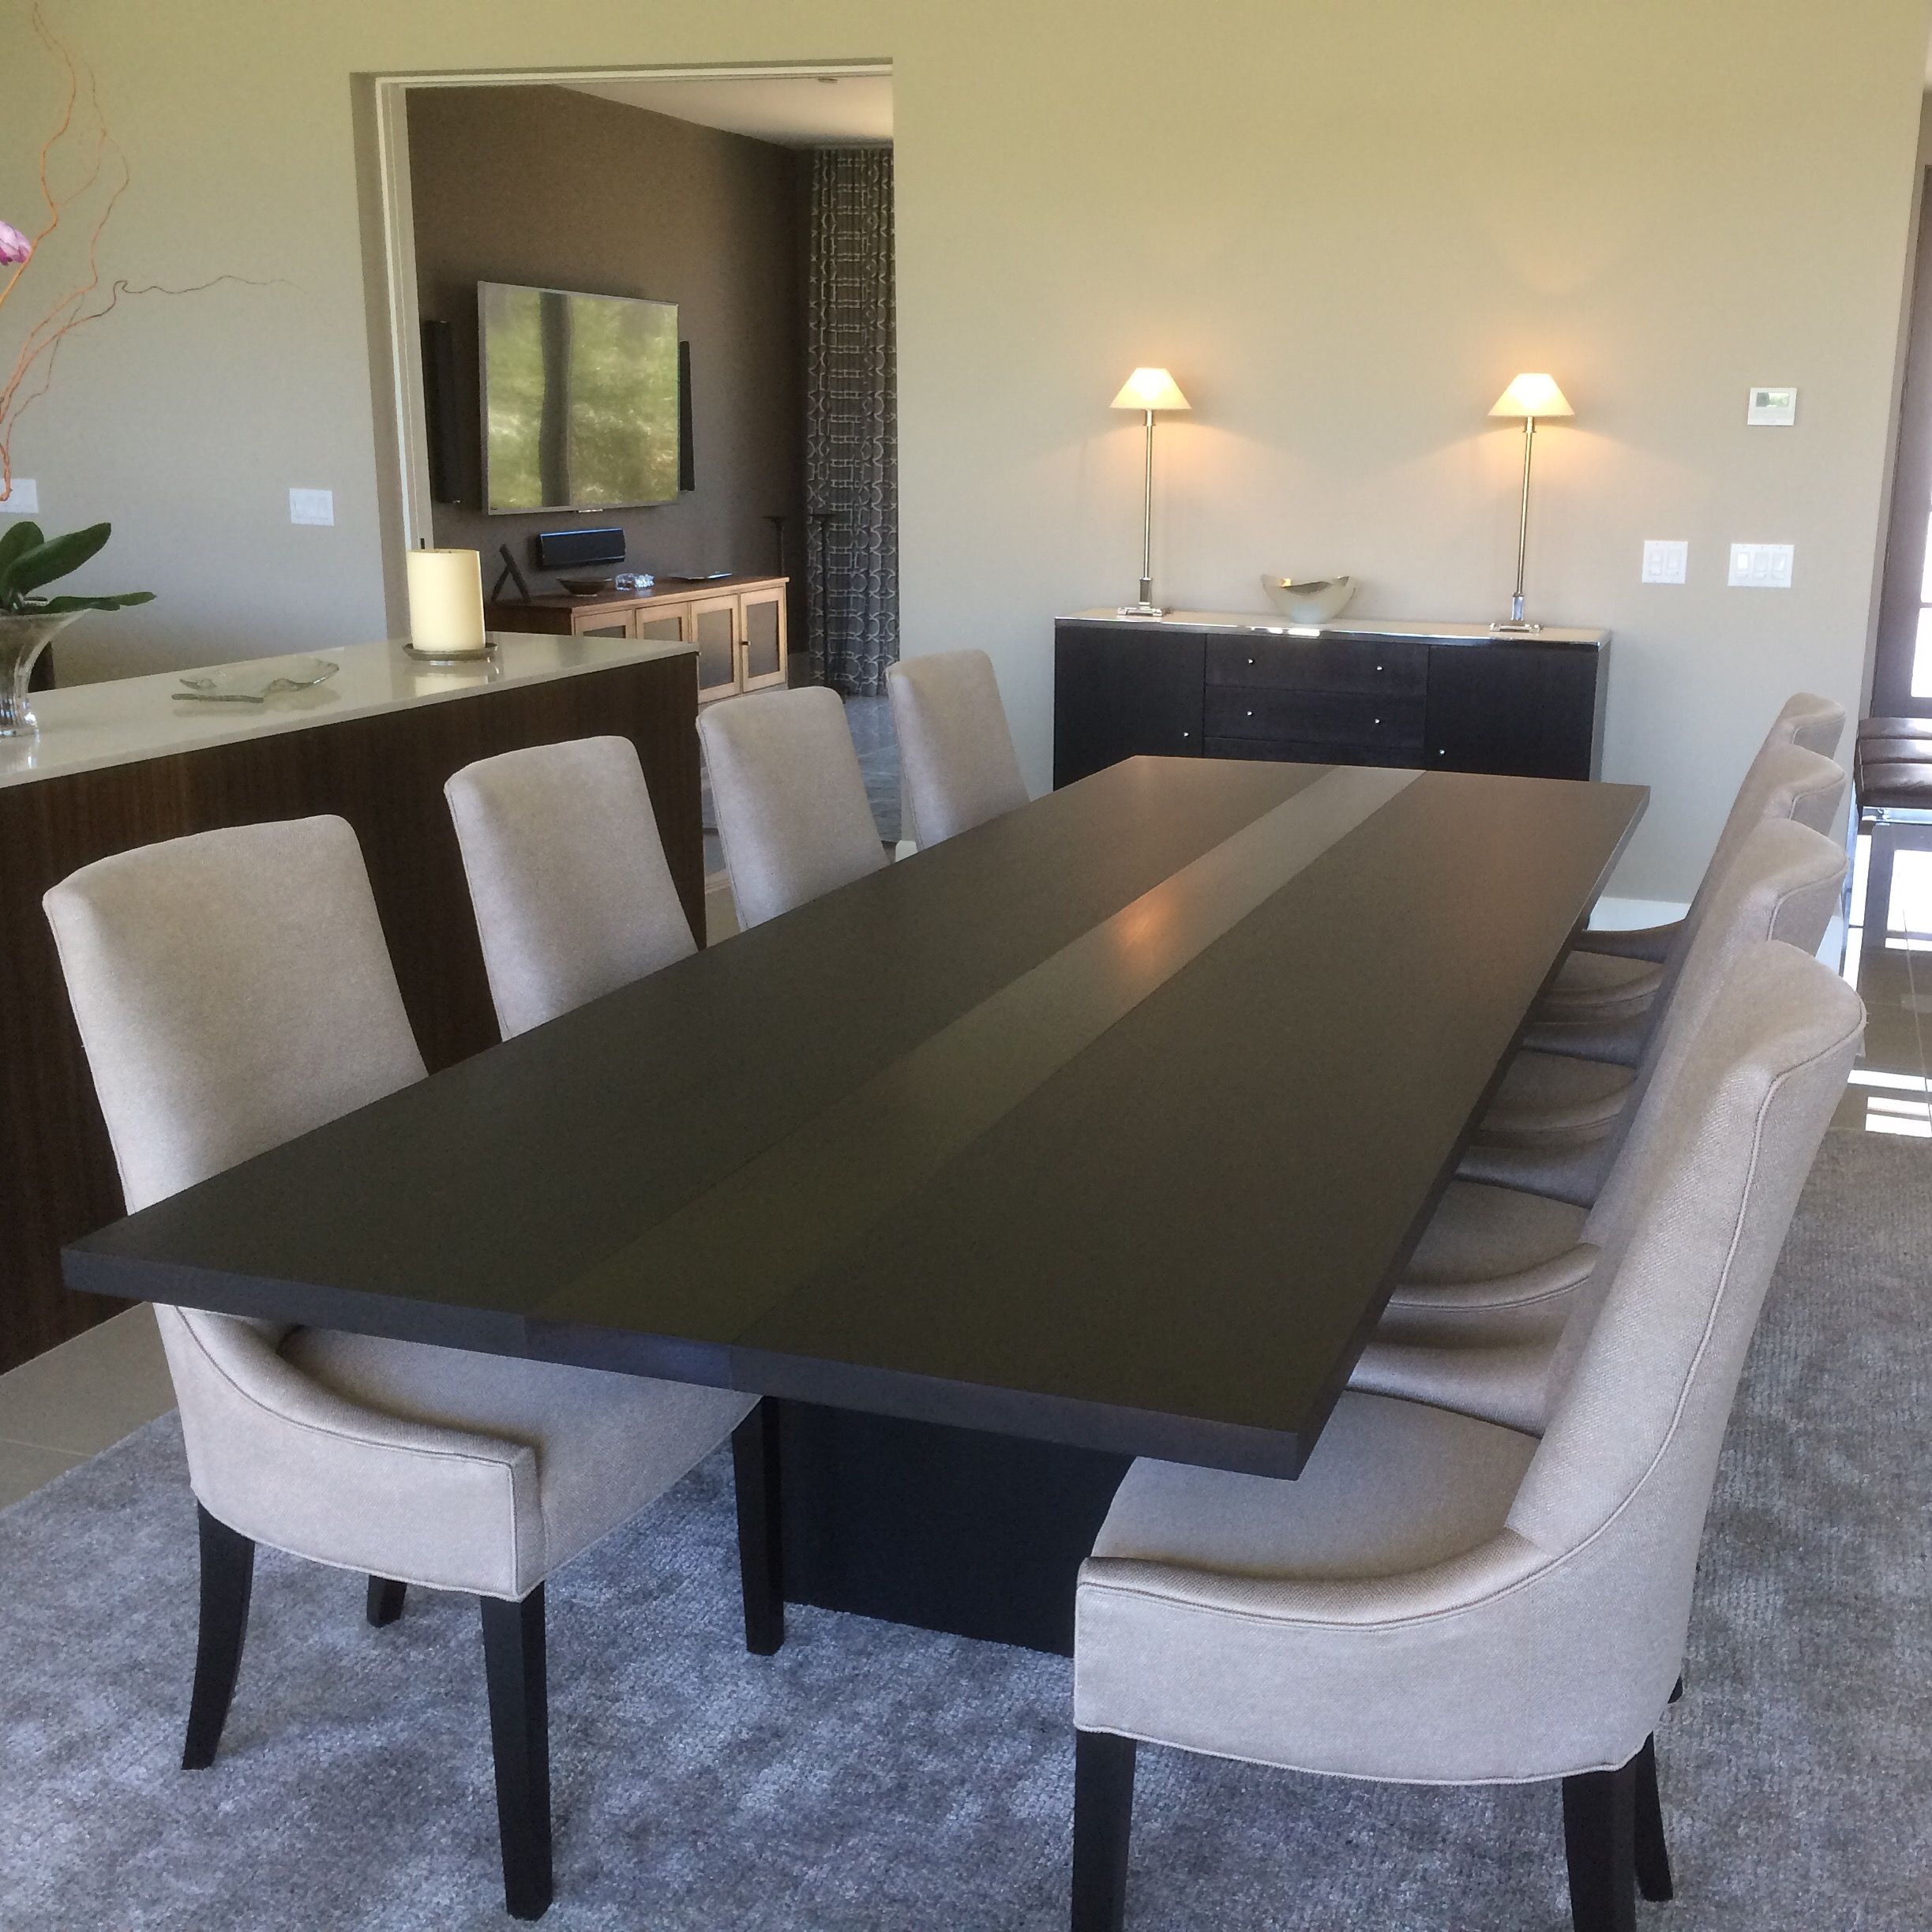 Handmade Modern Dining Table By Bedre Woodworking CustomMadecom